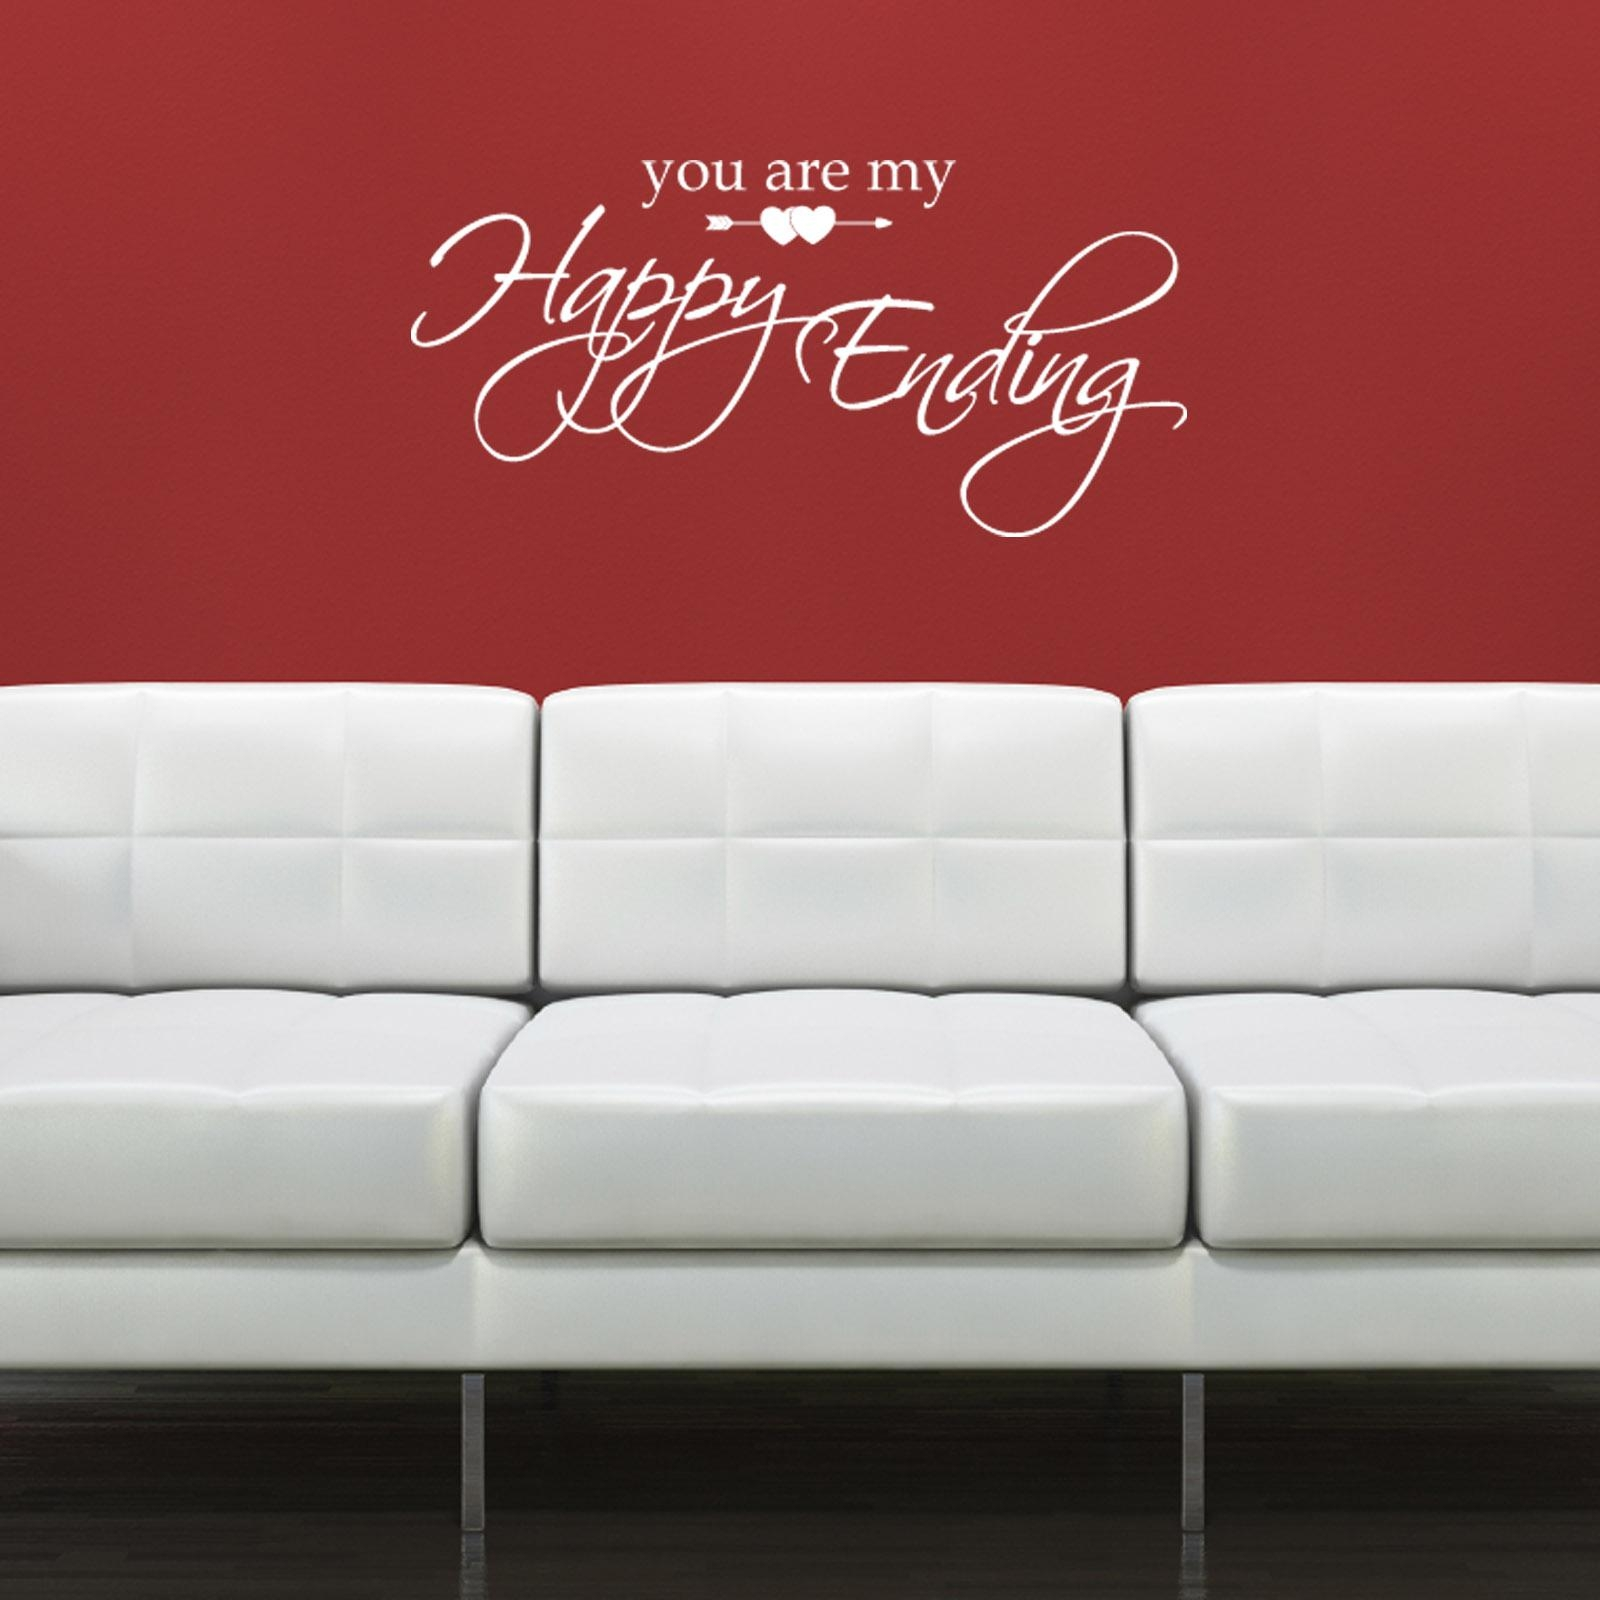 Wall Decals : Ideas Red Wall Decals 39 Red Floral Wall Stickers within Red Sox Wall Decals